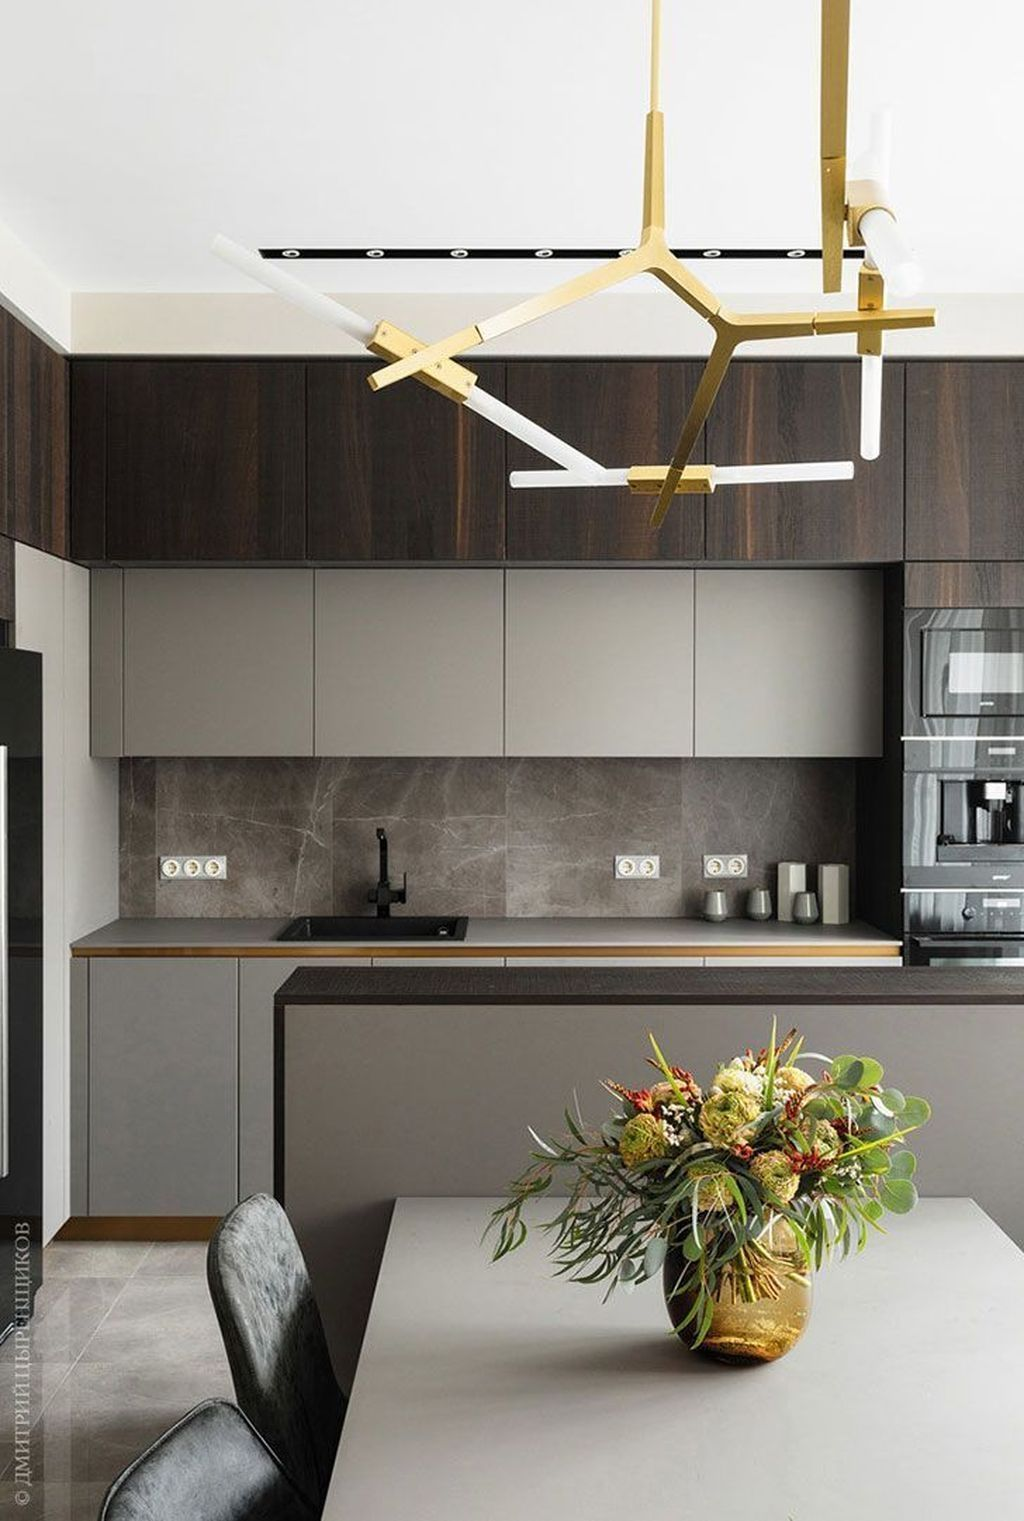 20 Totally Inspiring Apartment Kitchen Design Ideas Contemporary Kitchen Design Contemporary Kitchen Modern Kitchen Design